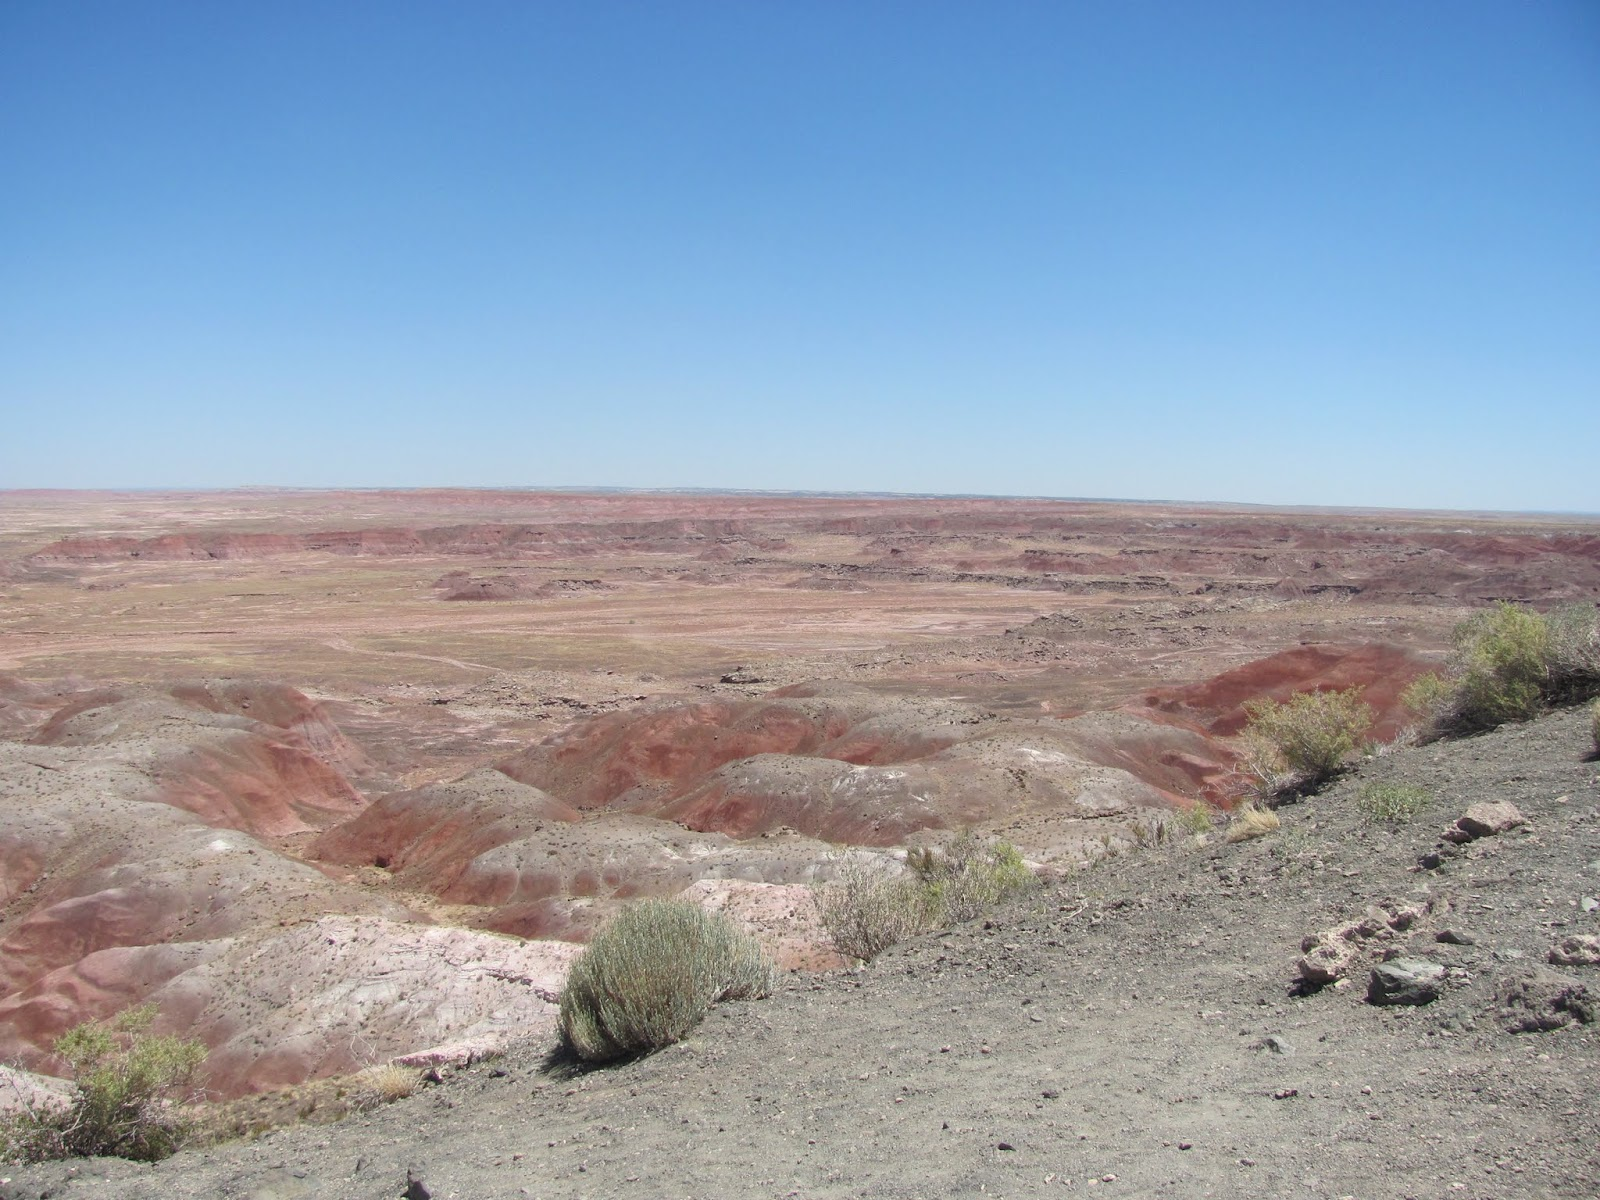 Small red mounds roll the landscape at Painted Desert in Petrified Forest National Park, Arizona